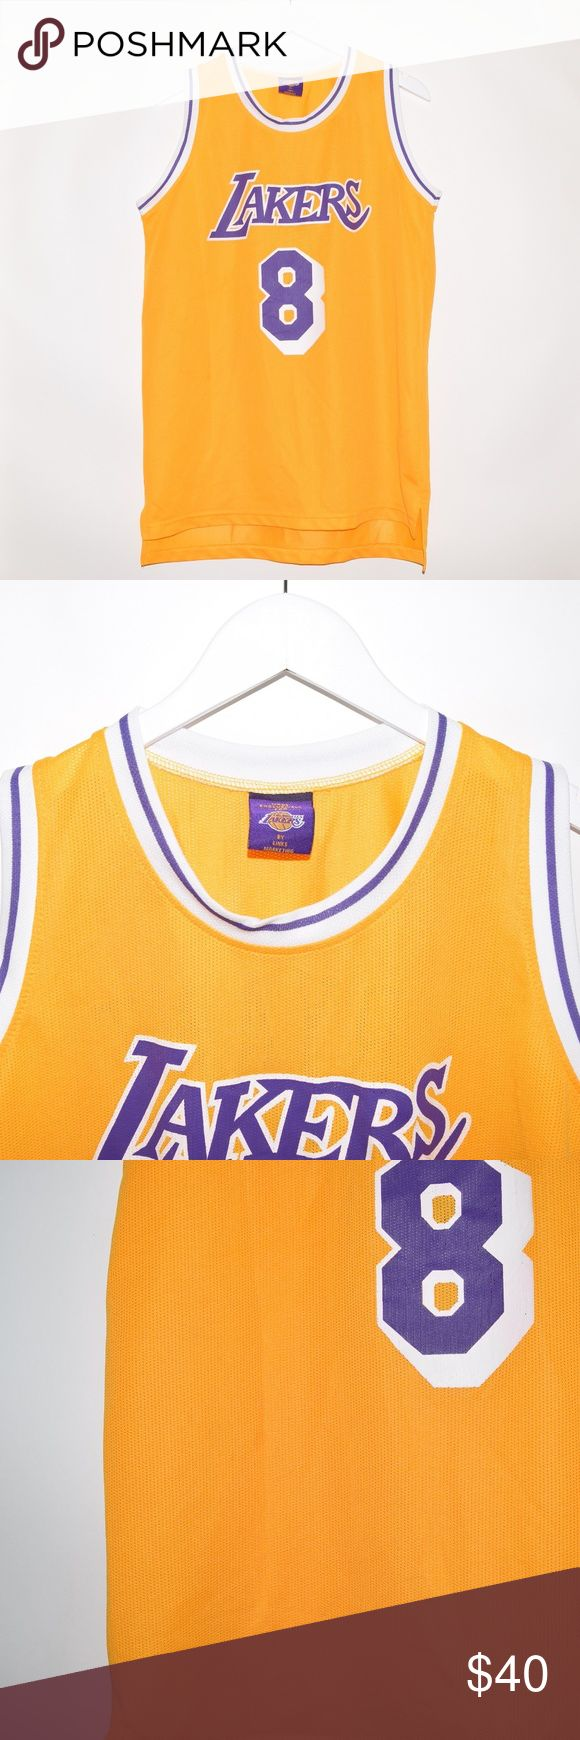 Vintage Links Marketing Kobe Bryant #8 Jersey Item name: Vintage Links Marketing Los Angeles Lakers Kobe Bryant #8 Basketball Jersey  Color: Gold / Purple  Condition: This is a pre-owned item. Aside from some small light stains on the left front of the jersey it is in great used condition with no rips, holes, etc. Comes from a smoke  free household.  Size: XL  Measurements:   Pit to Pit - 21.5 inches  Neckline to bottom - 32 inches Vintage Shirts